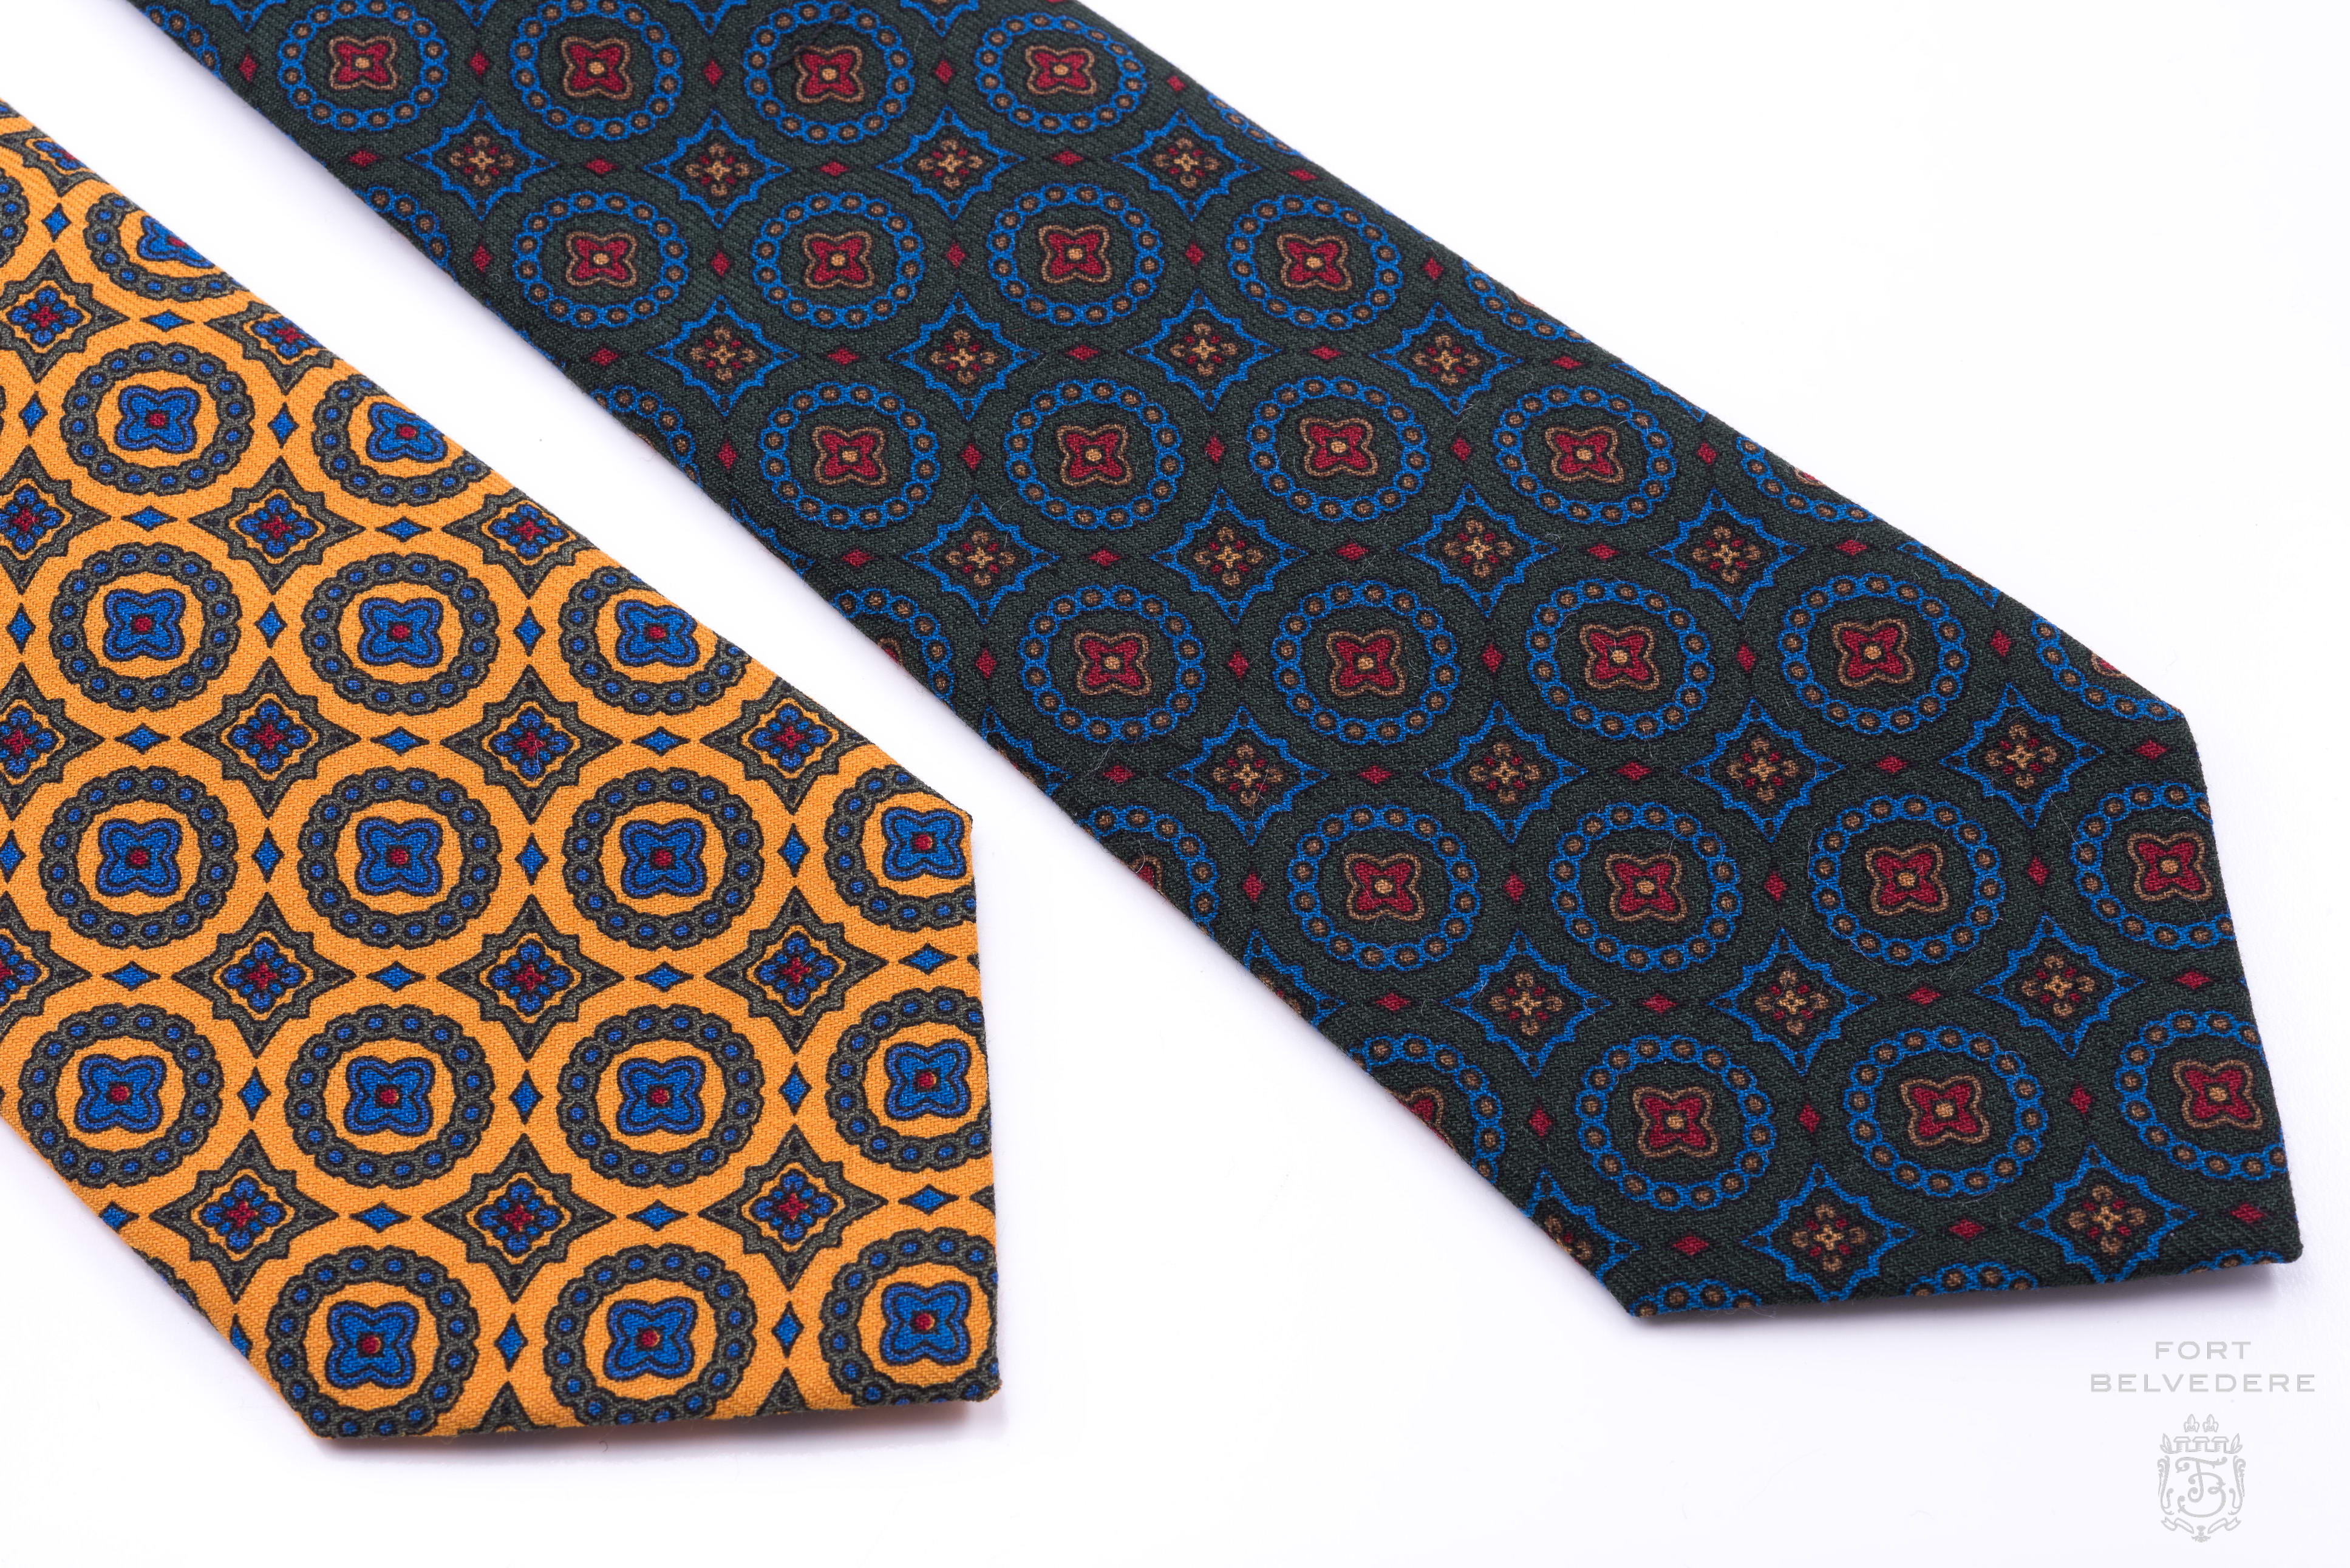 Wool Challis Tie in Sunflower Yellow with Green,Blue & Red Pattern - Fort  Belvedere